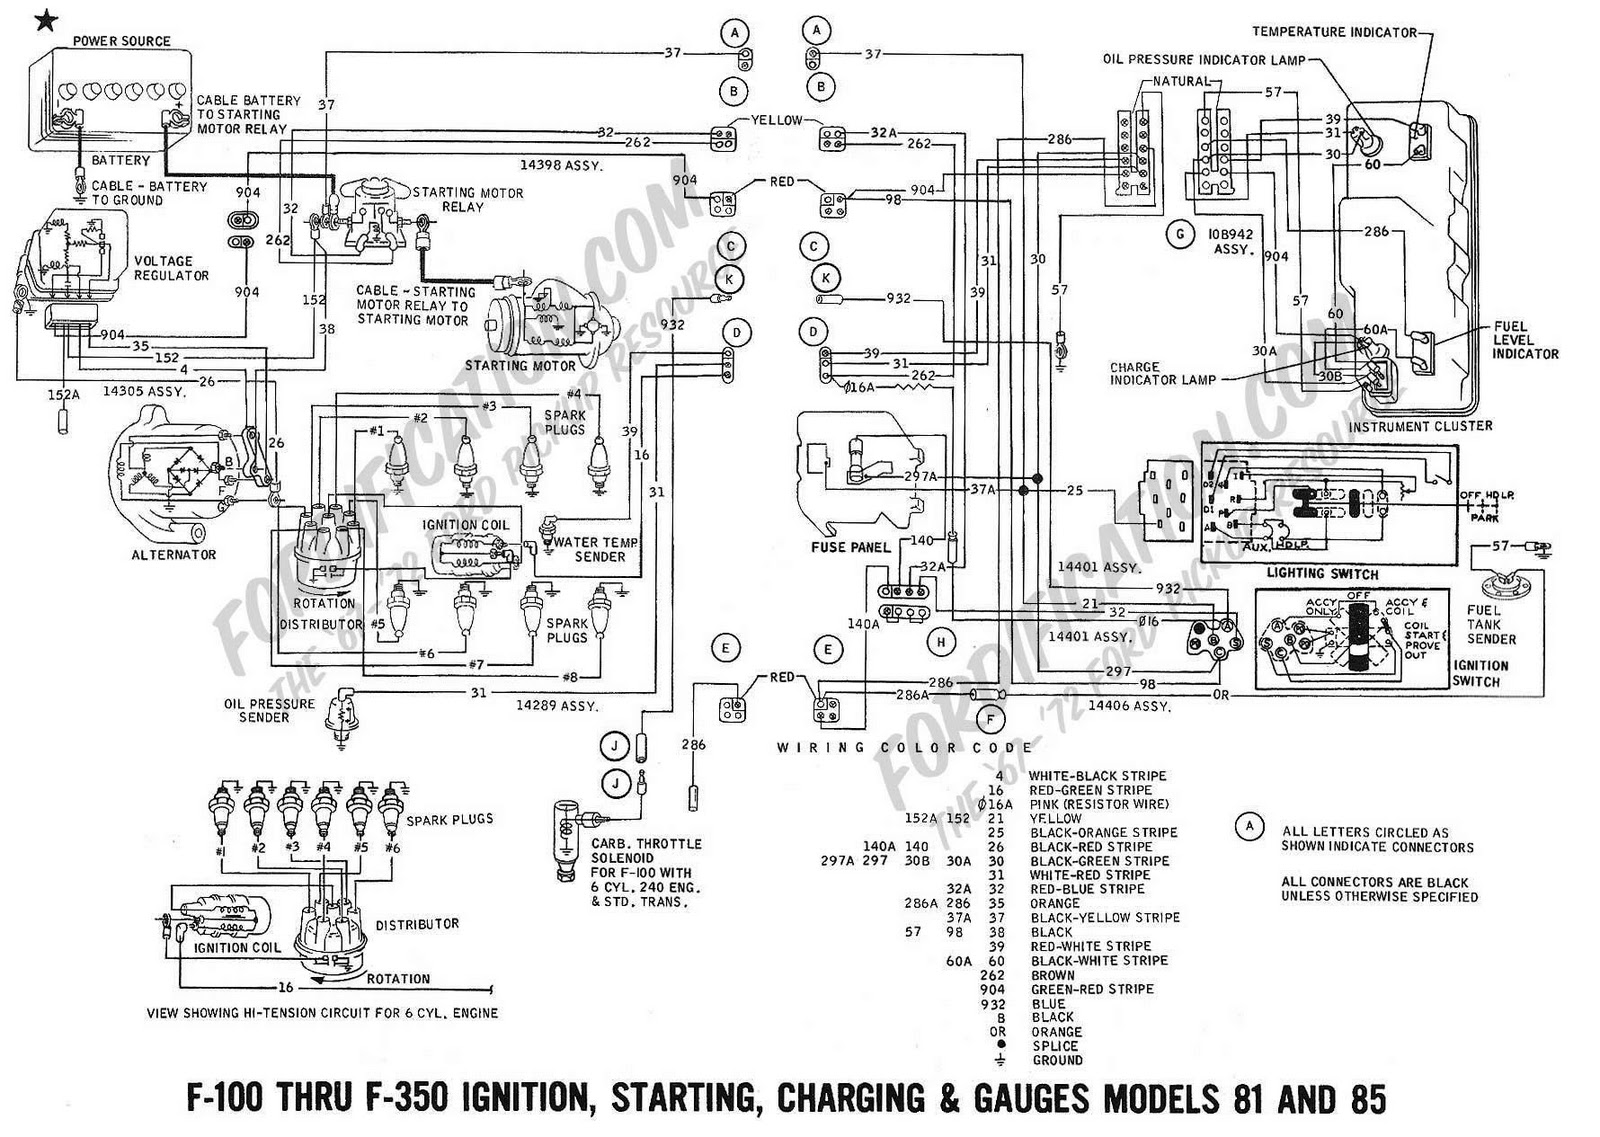 1969 Ford F100 F350 Ignition%2C Starting%2C Charging%2C And Gauges Wiring Diagram 1993 ford f250 wiring diagram 1993 ford f 250 engine \u2022 free wiring Ford F-250 Trailer Wiring Diagram at honlapkeszites.co